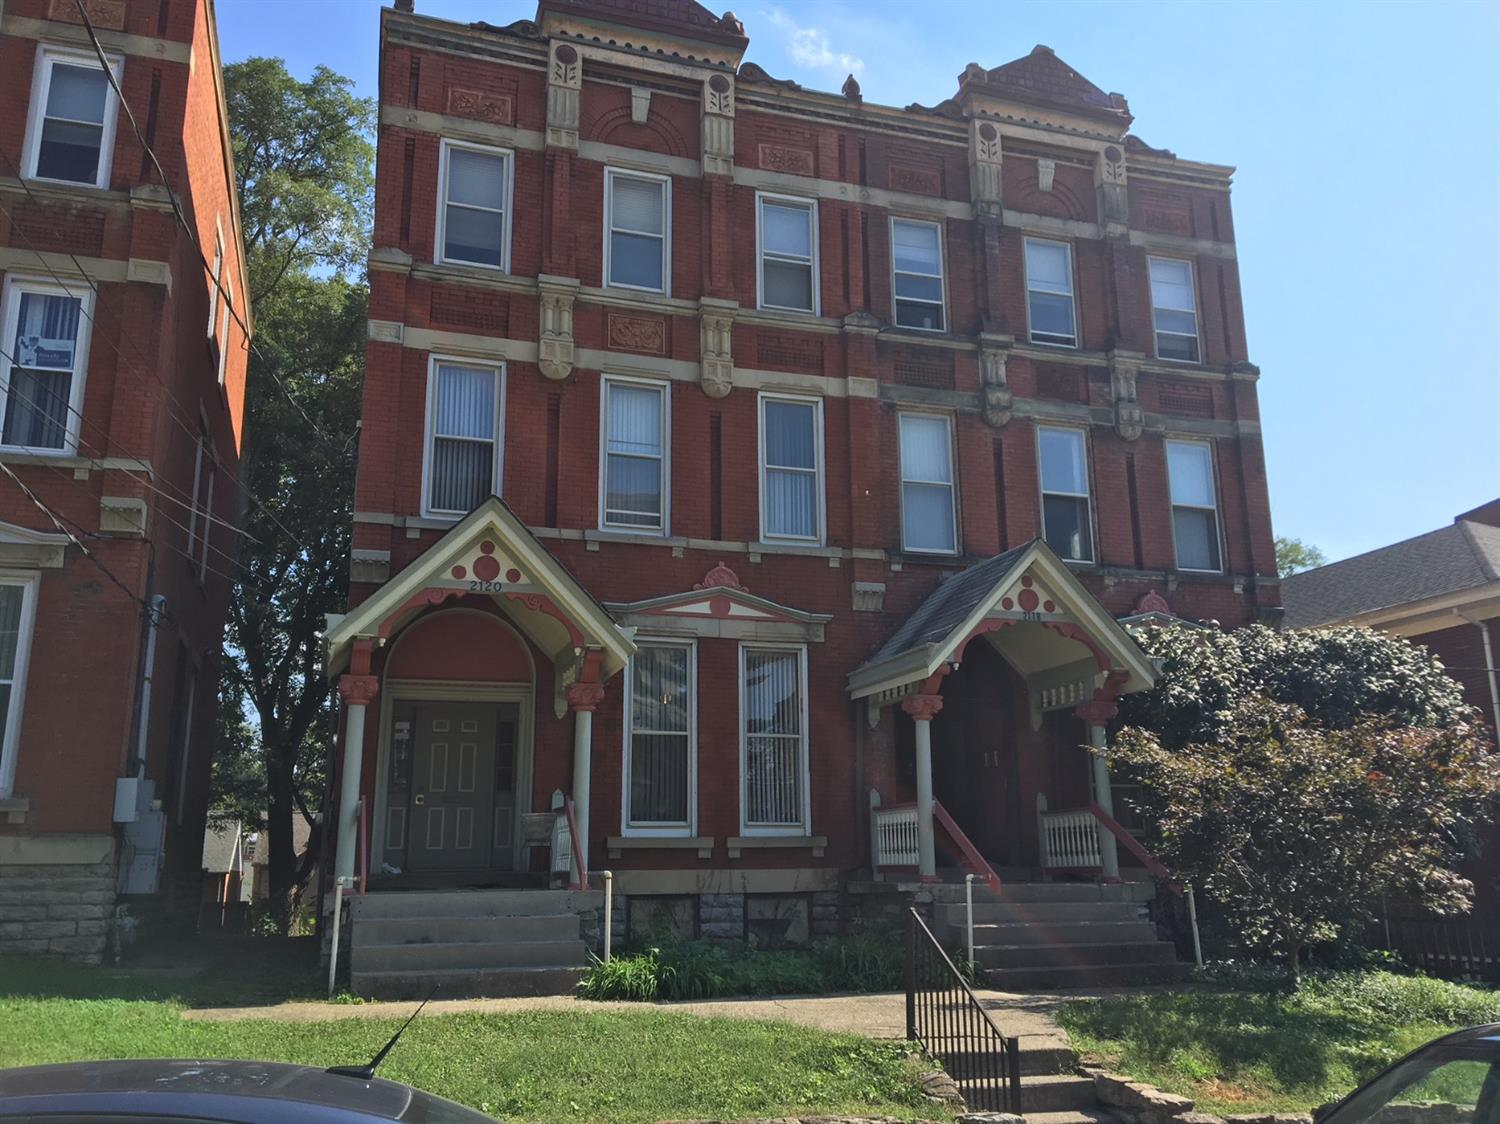 Photo 2 for 2118 Sinton Ave Walnut Hills, OH 45206